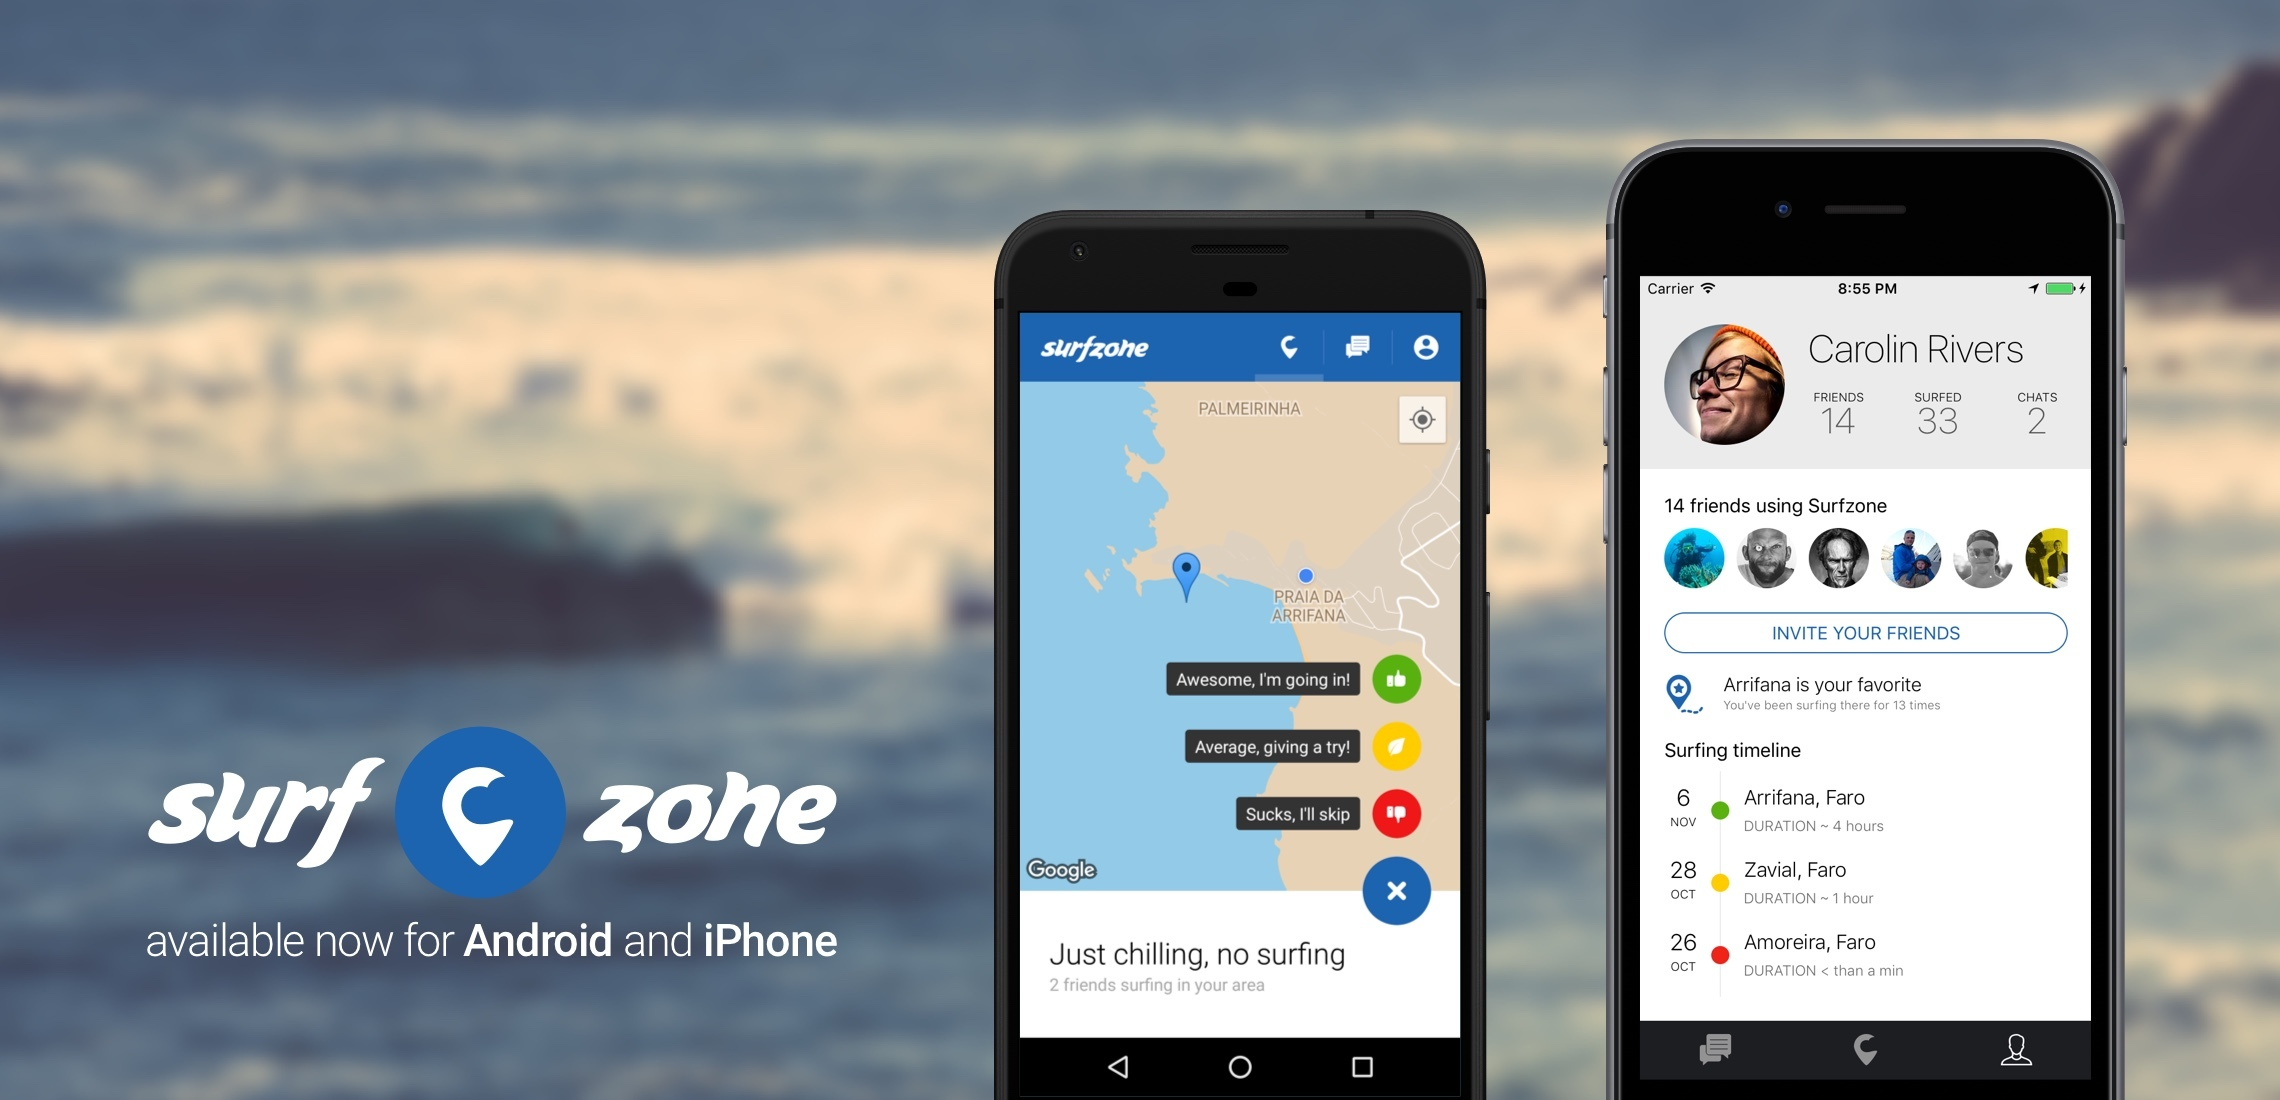 Surfzone android iphone app 2